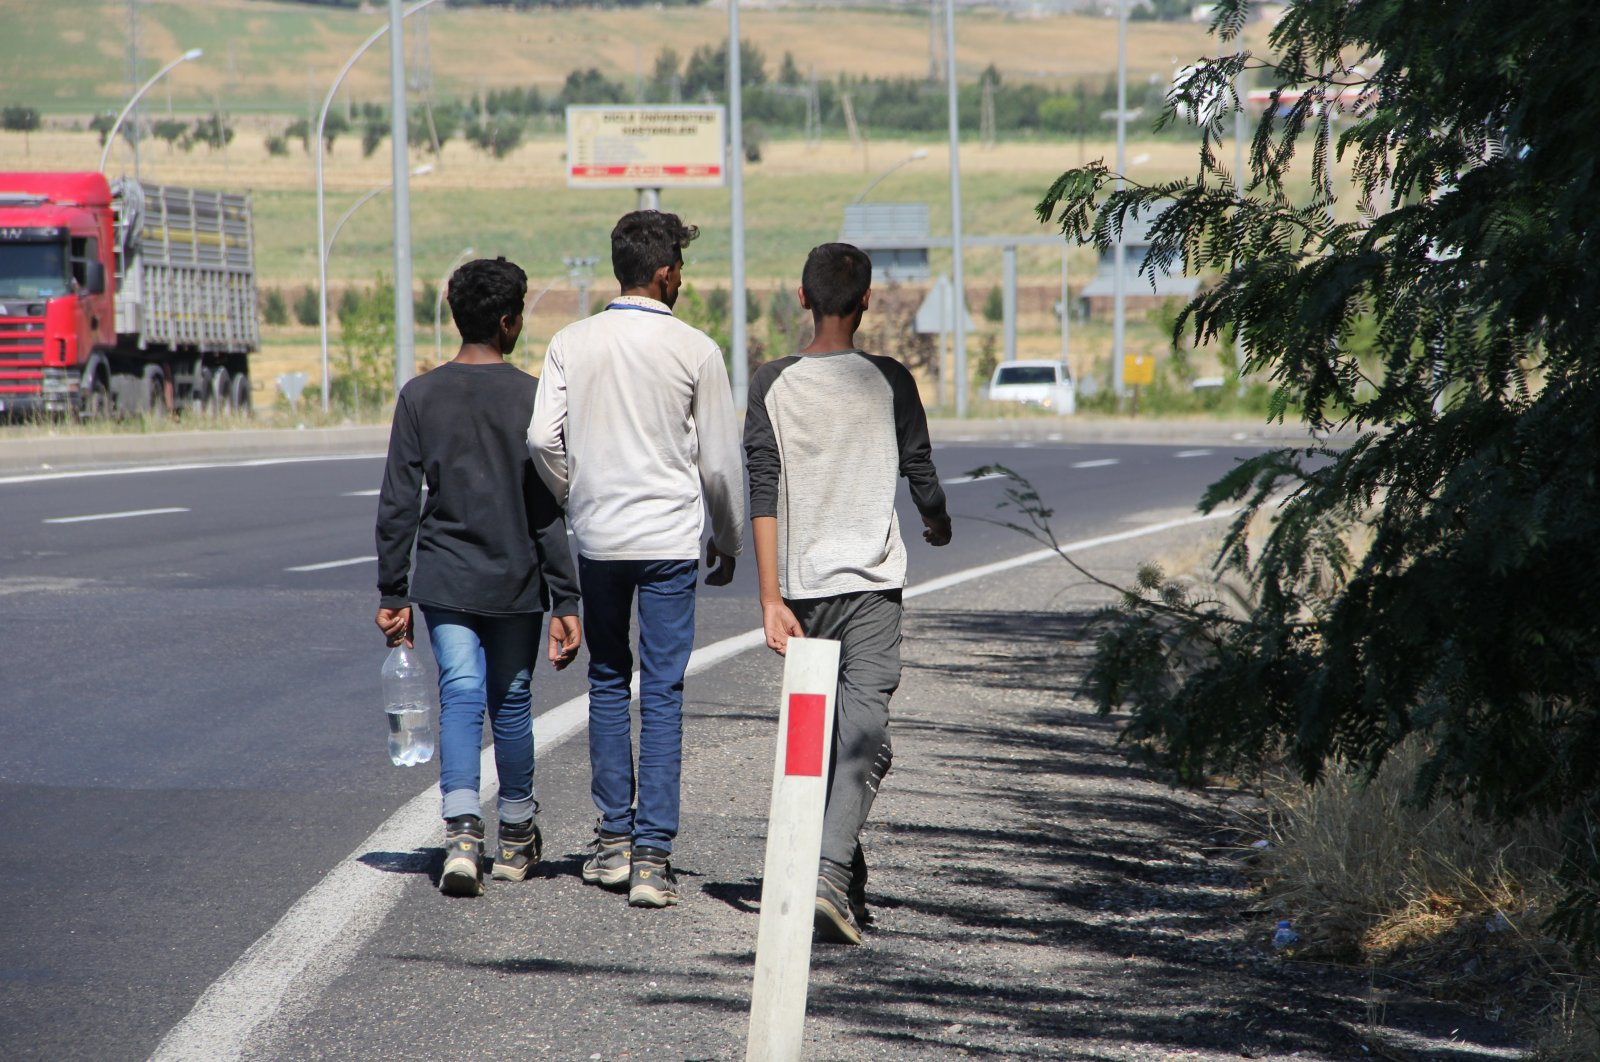 Three Afghan migrants walk on a highway in southeastern Diyarbakır province, July 16, 2020. (IHA)